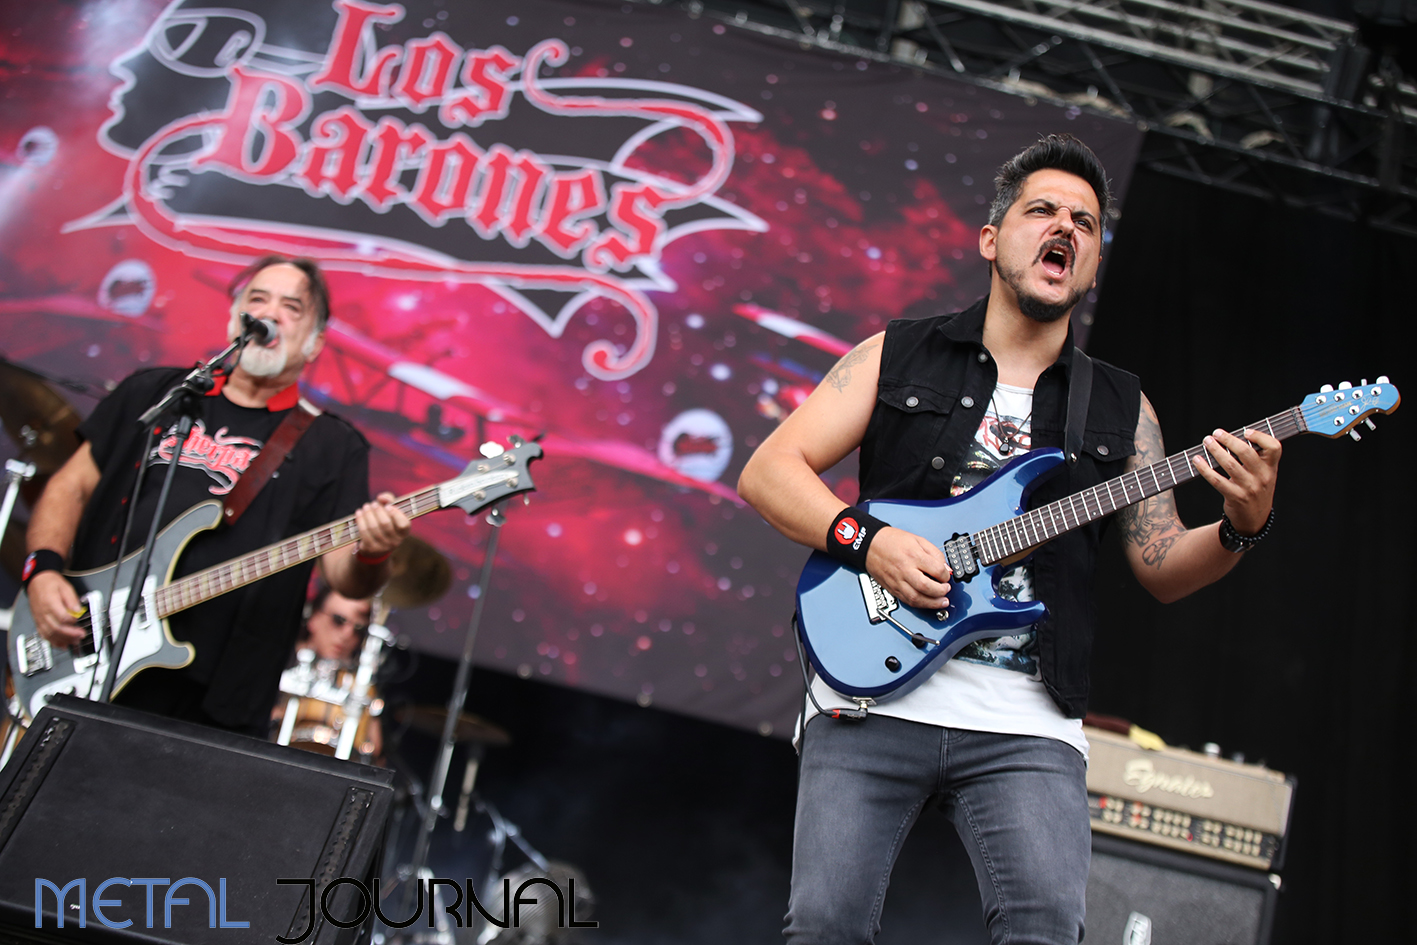 los barones - leyendas del rock 2019 metal journal pic 7